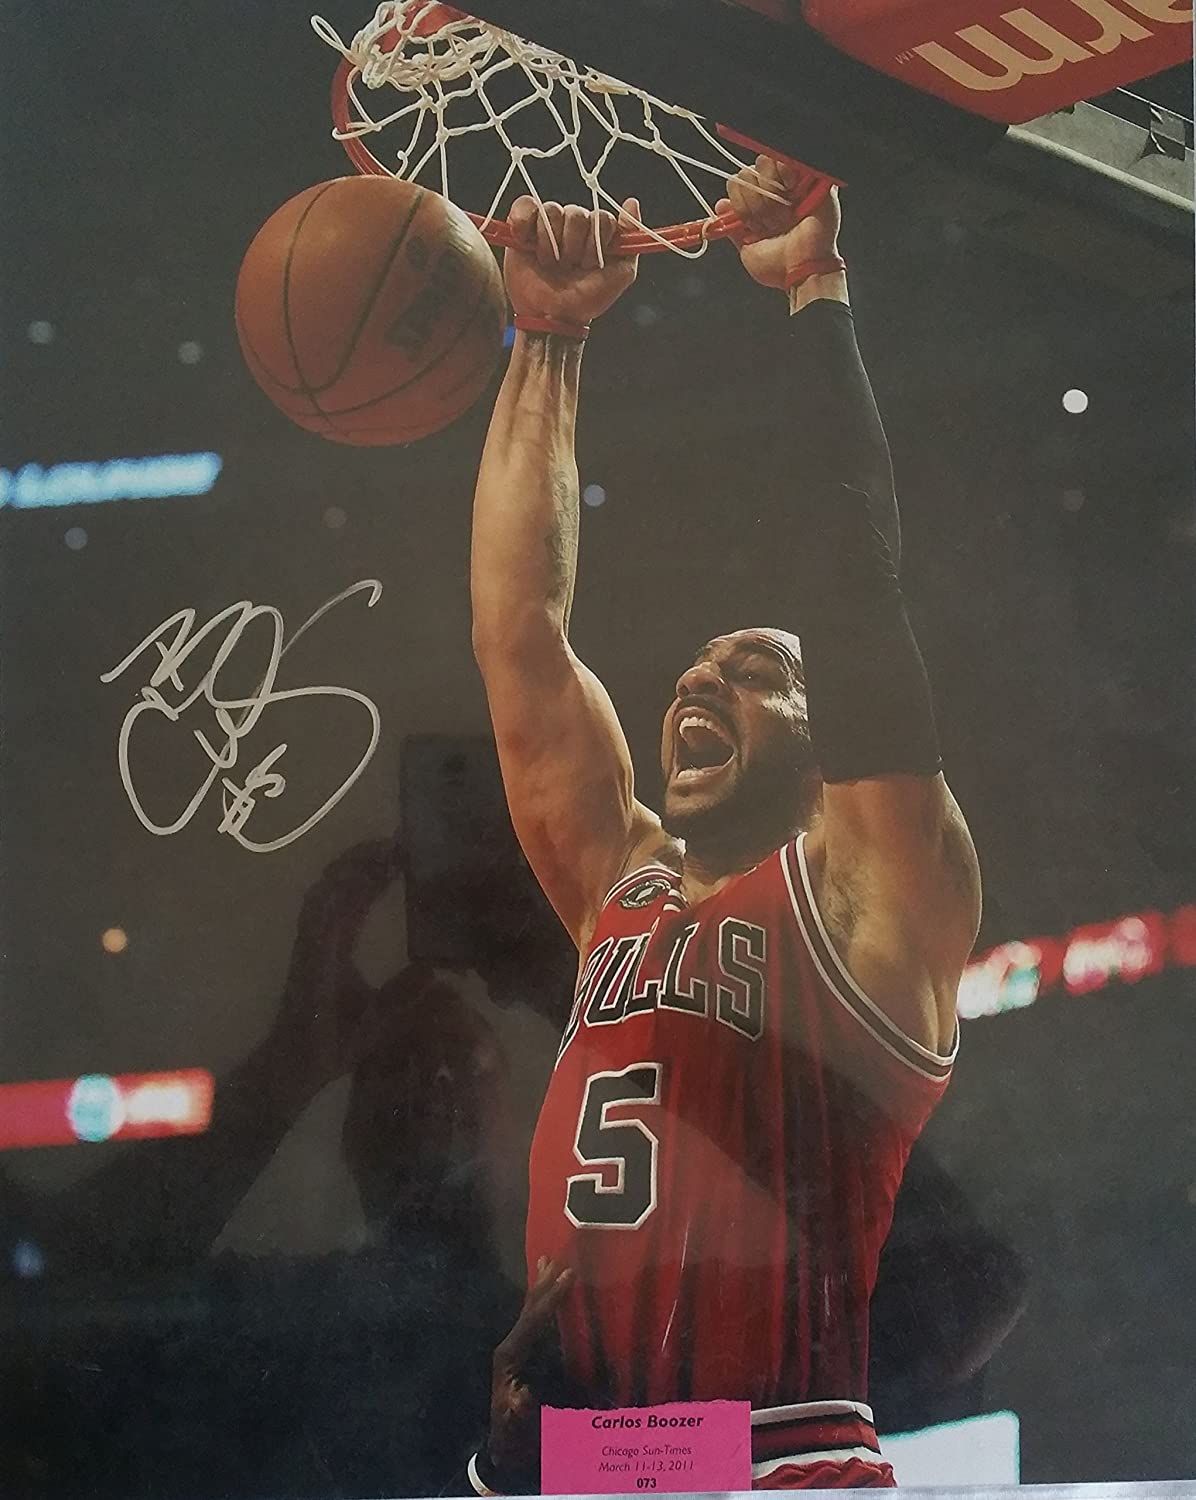 27084f984 Carlos Boozer Signed Autographed Glossy 16x20 Photo - Chicago Bulls at  Amazon s Sports Collectibles Store